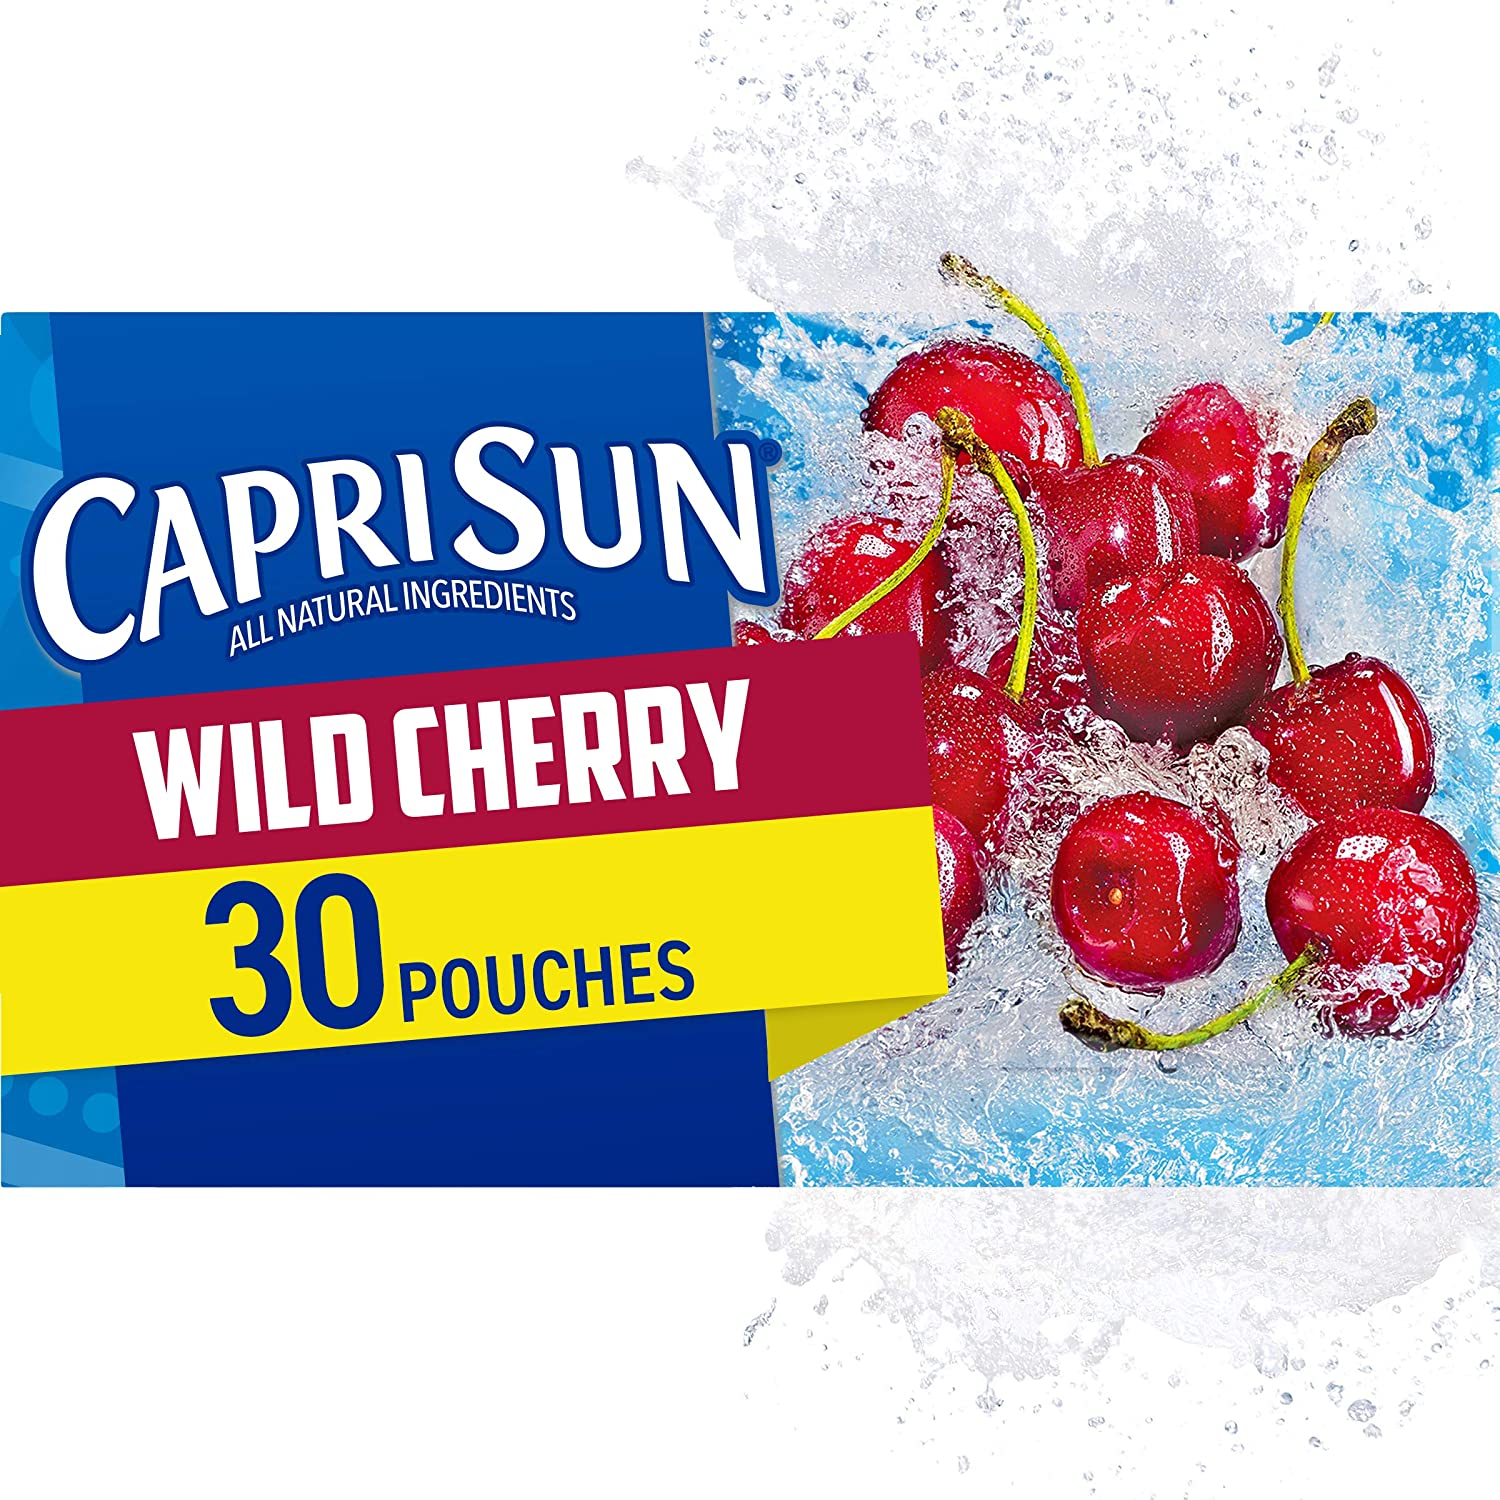 Handmade Recycled Capri Sun Juice Pouch Totes w Front Pocket *YOUR CHOICE of 1 of 2 flavors  Wild Cherry or Pacific Cooler